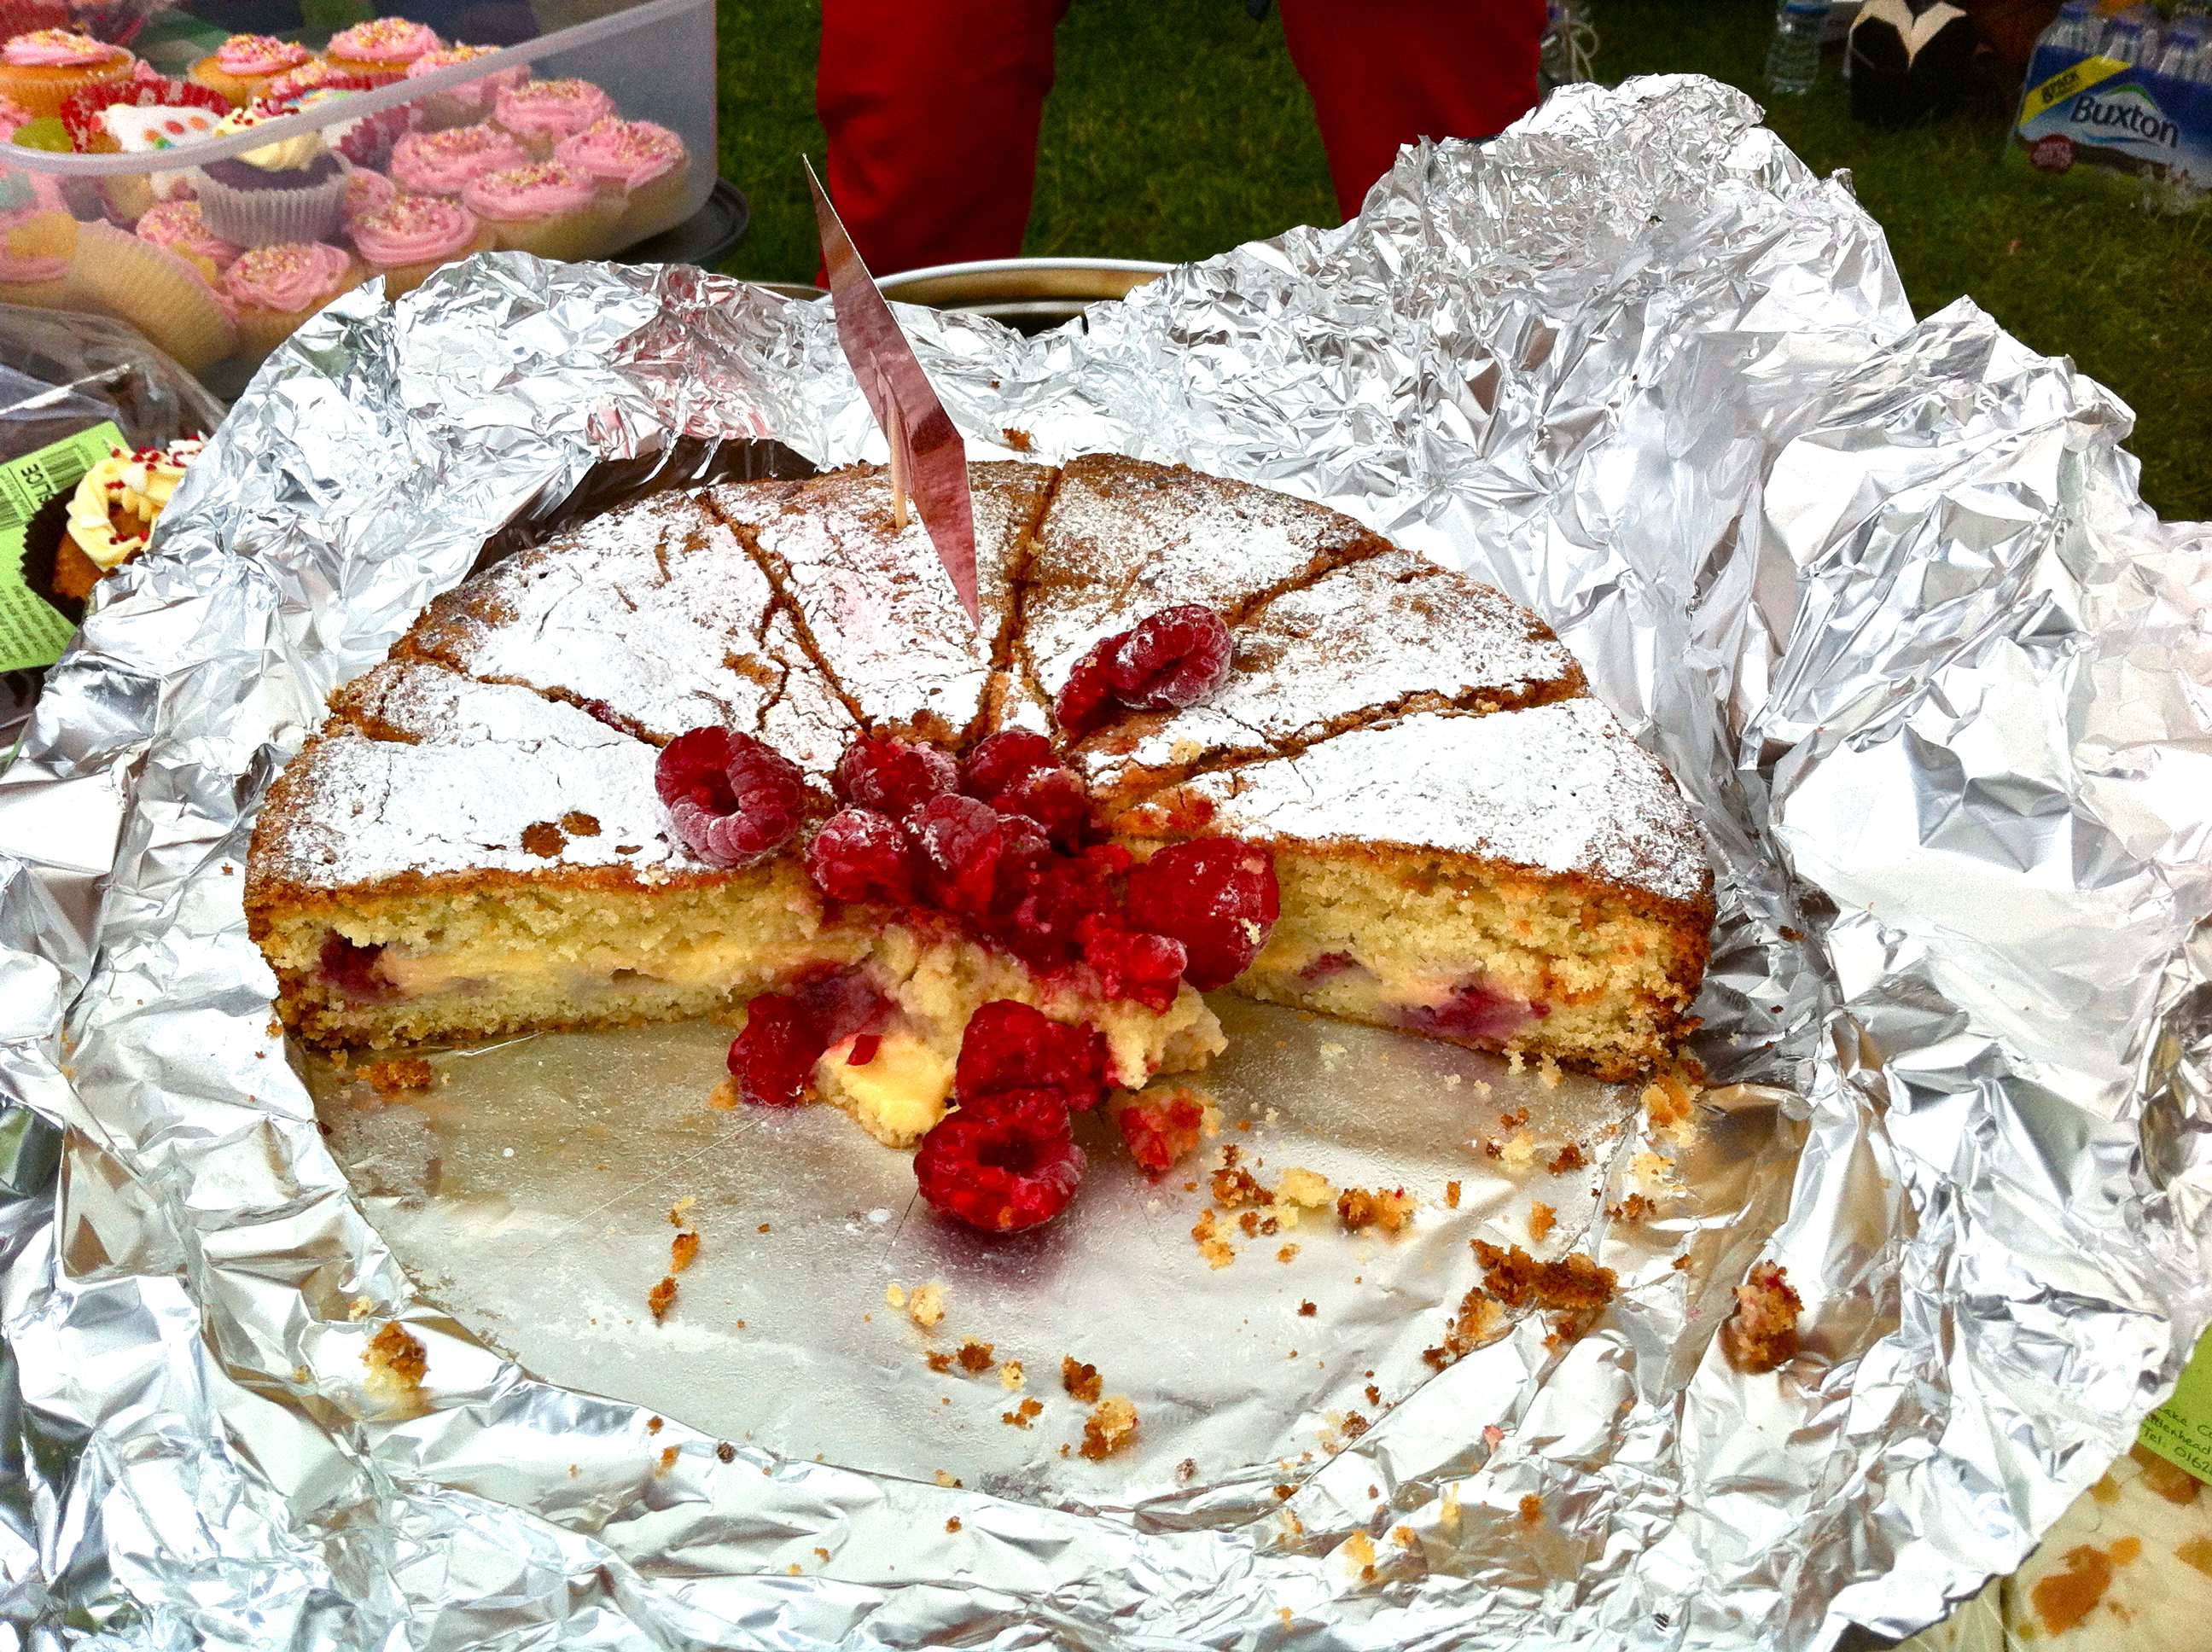 Raspberry and custard cake